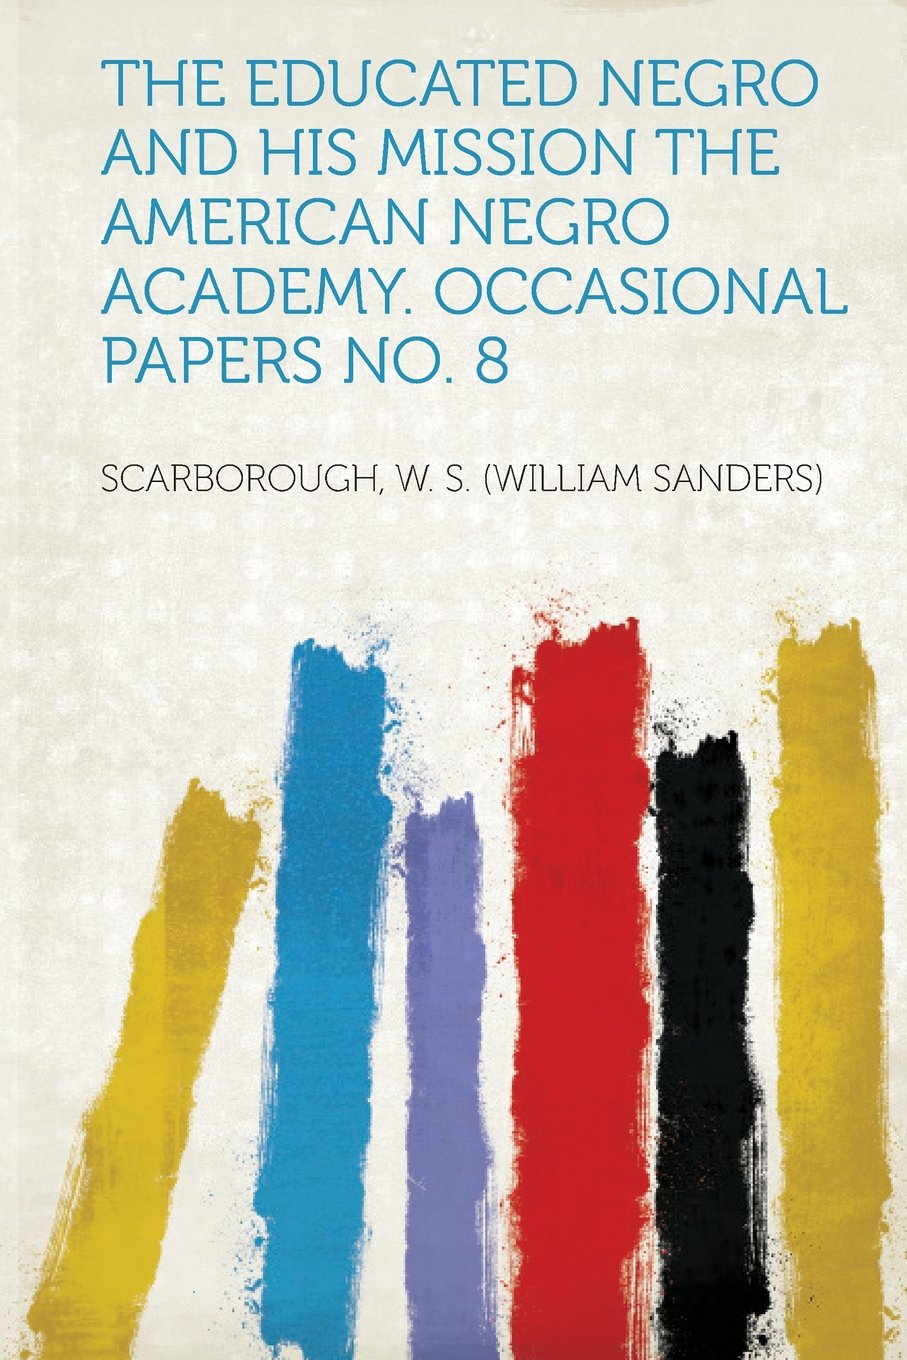 Download The Educated Negro and His Mission The American Negro Academy. Occasional Papers No. 8 ebook